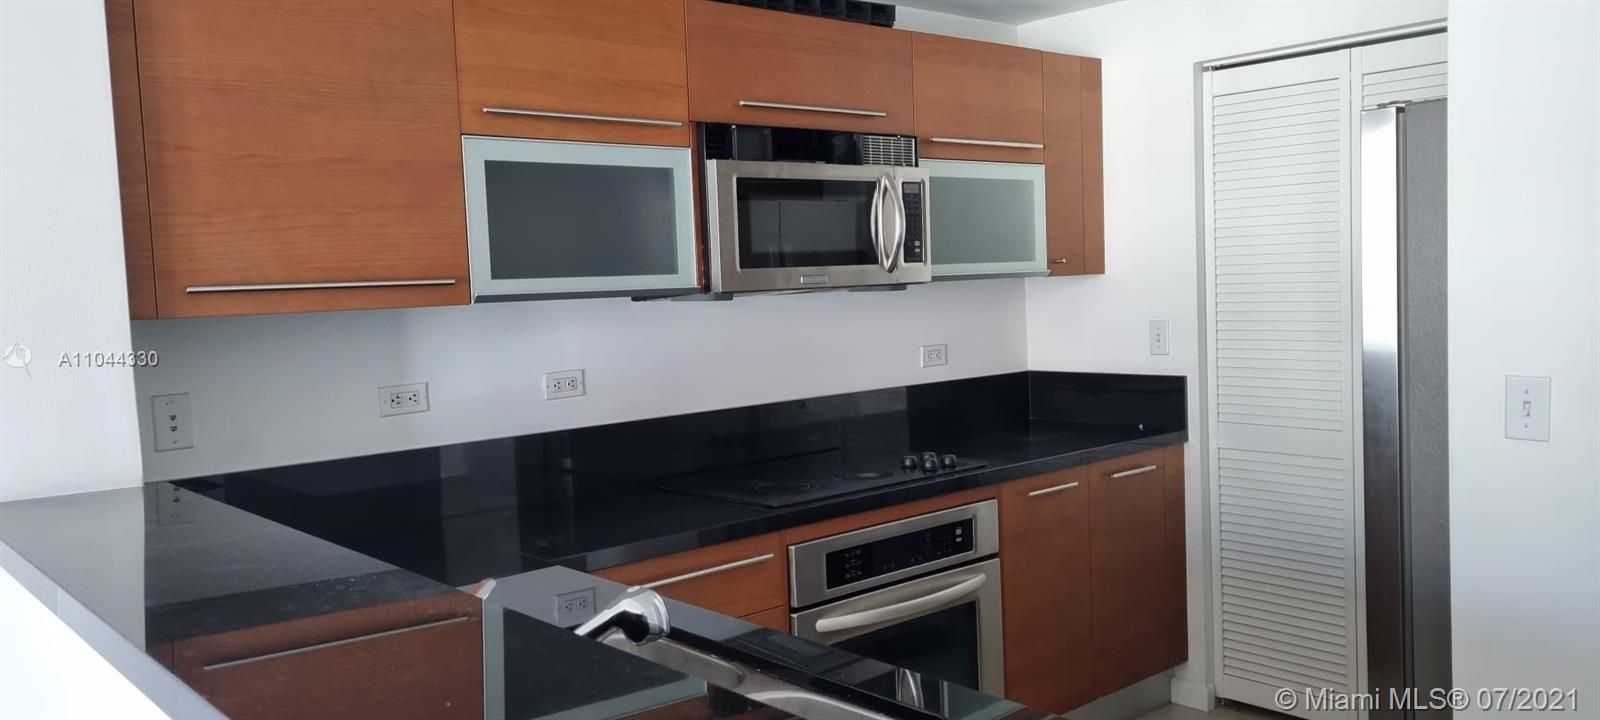 Great location across from Bayside MarketPlace in heart of downtown Miami. 1 bedrooms and 1 bathroom